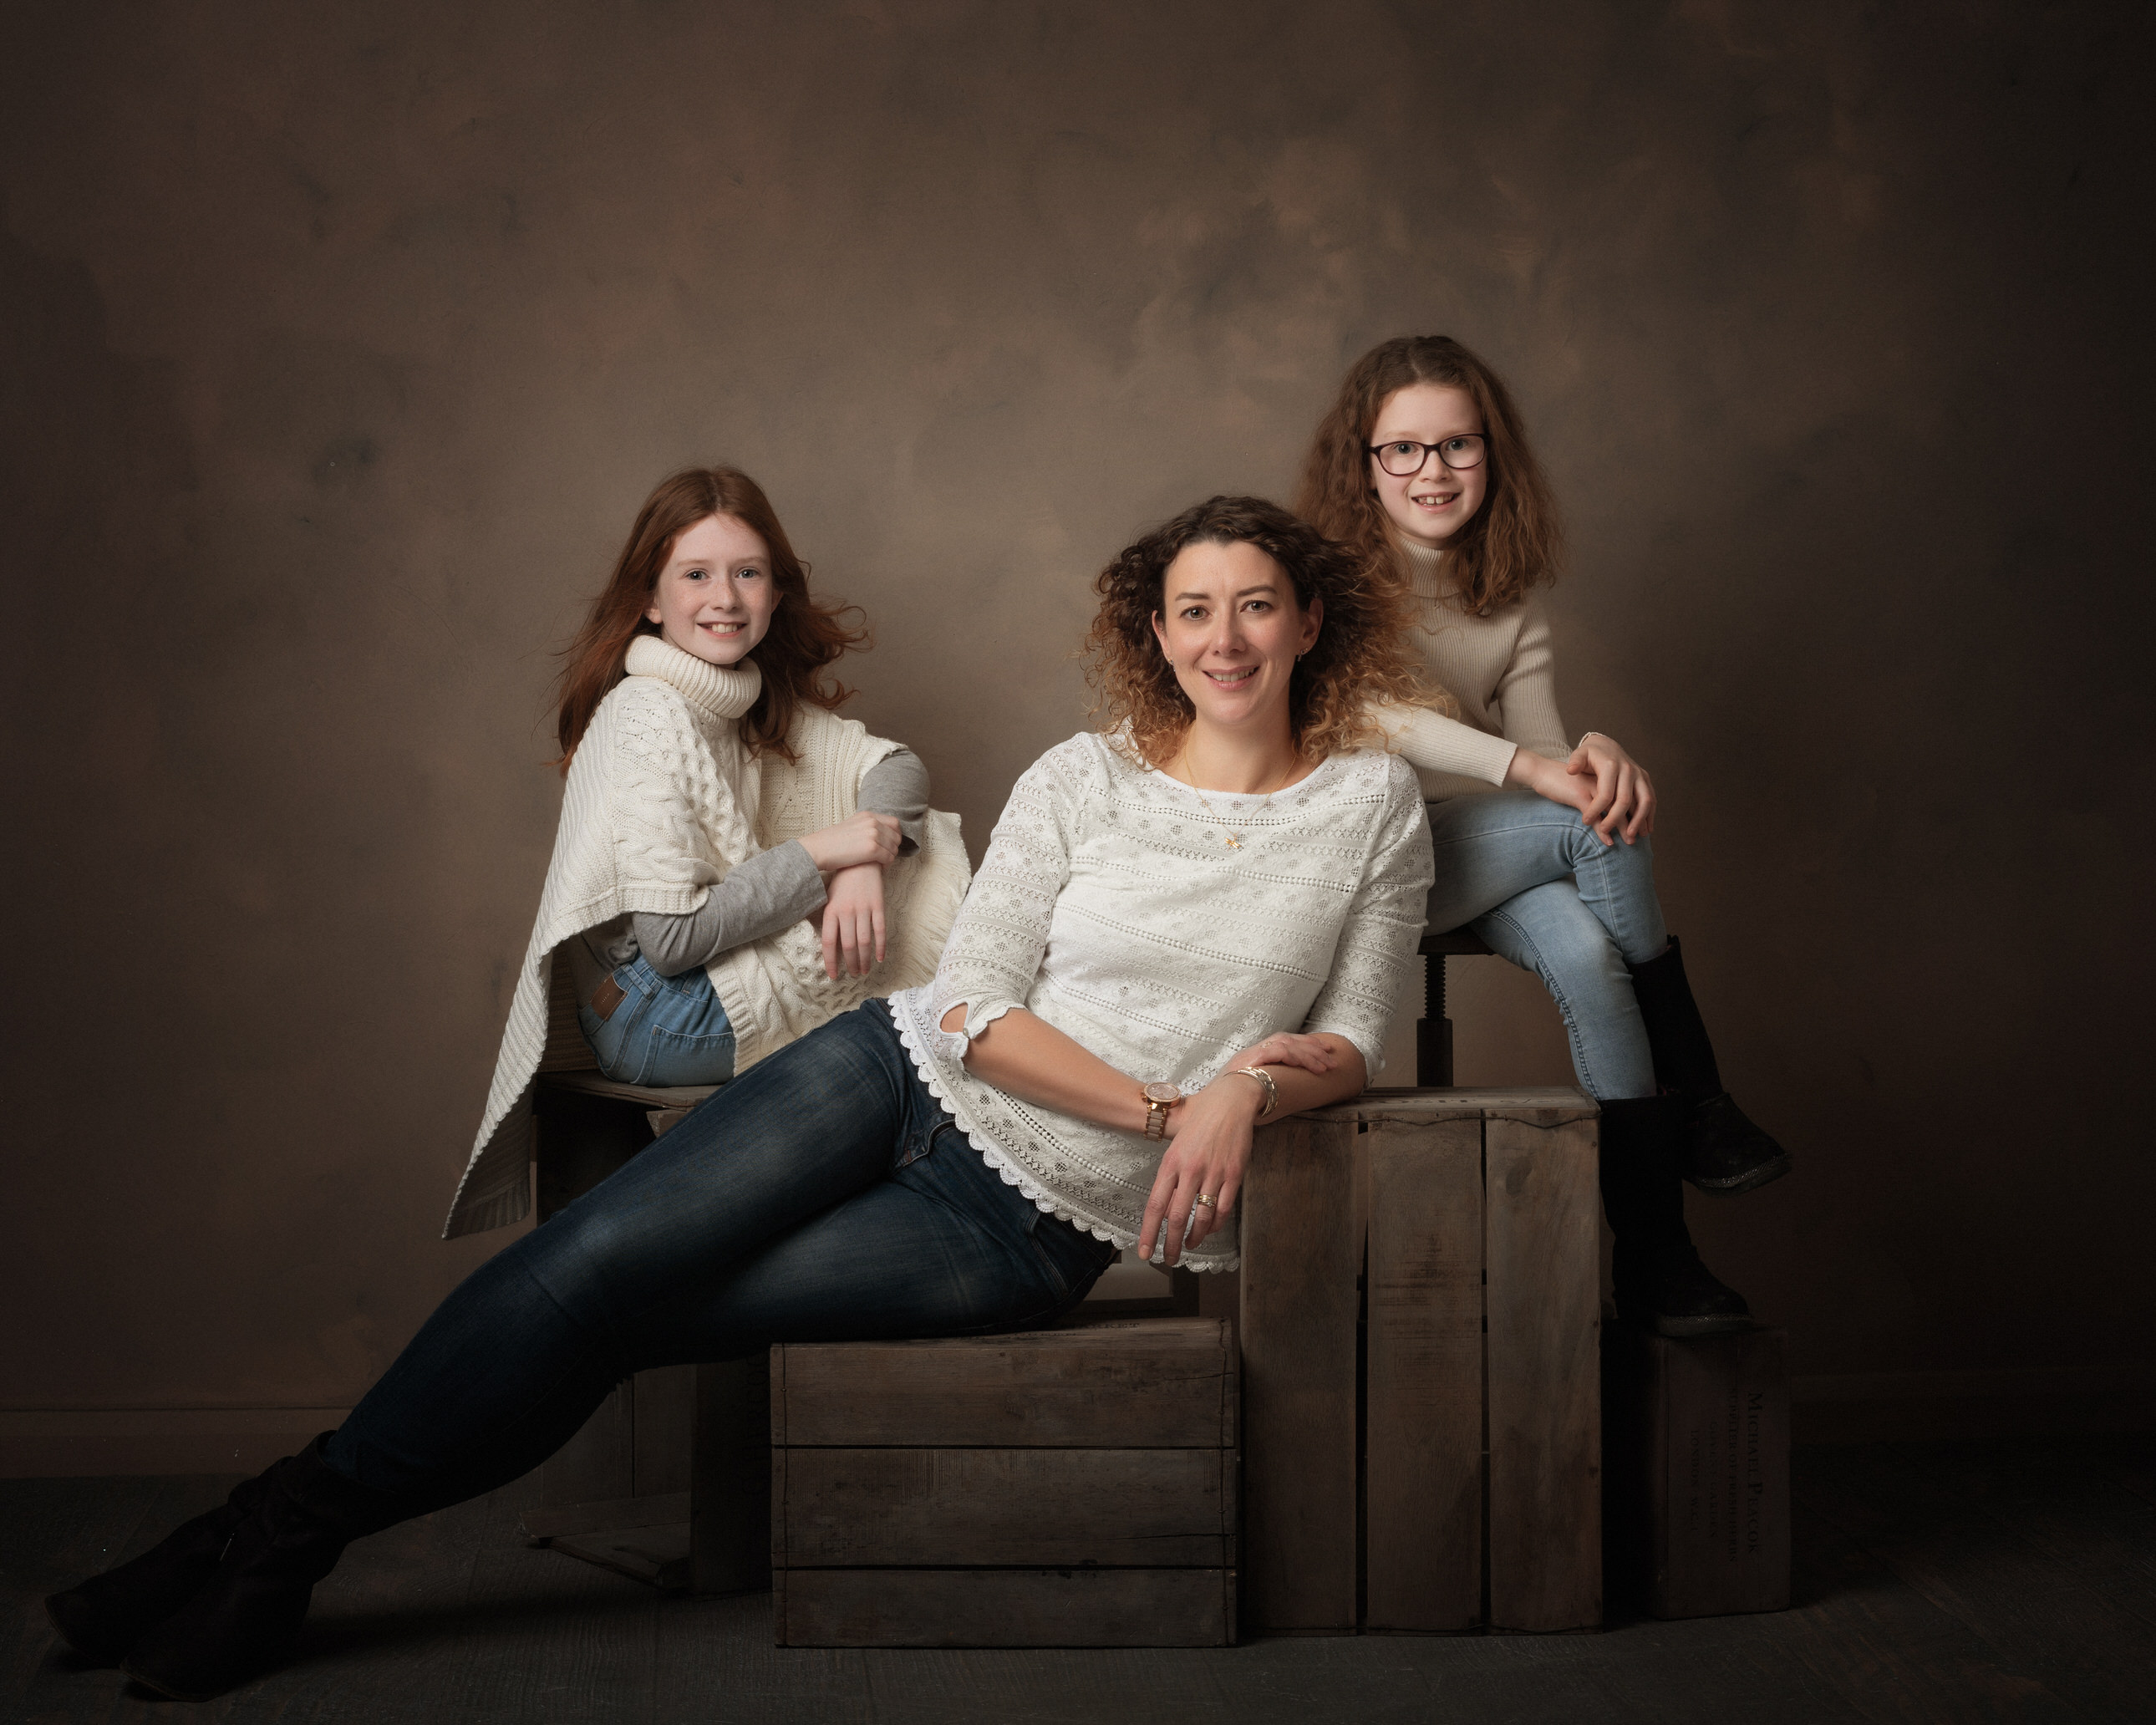 Mum with daughters in studio by Family photographer Lancashire